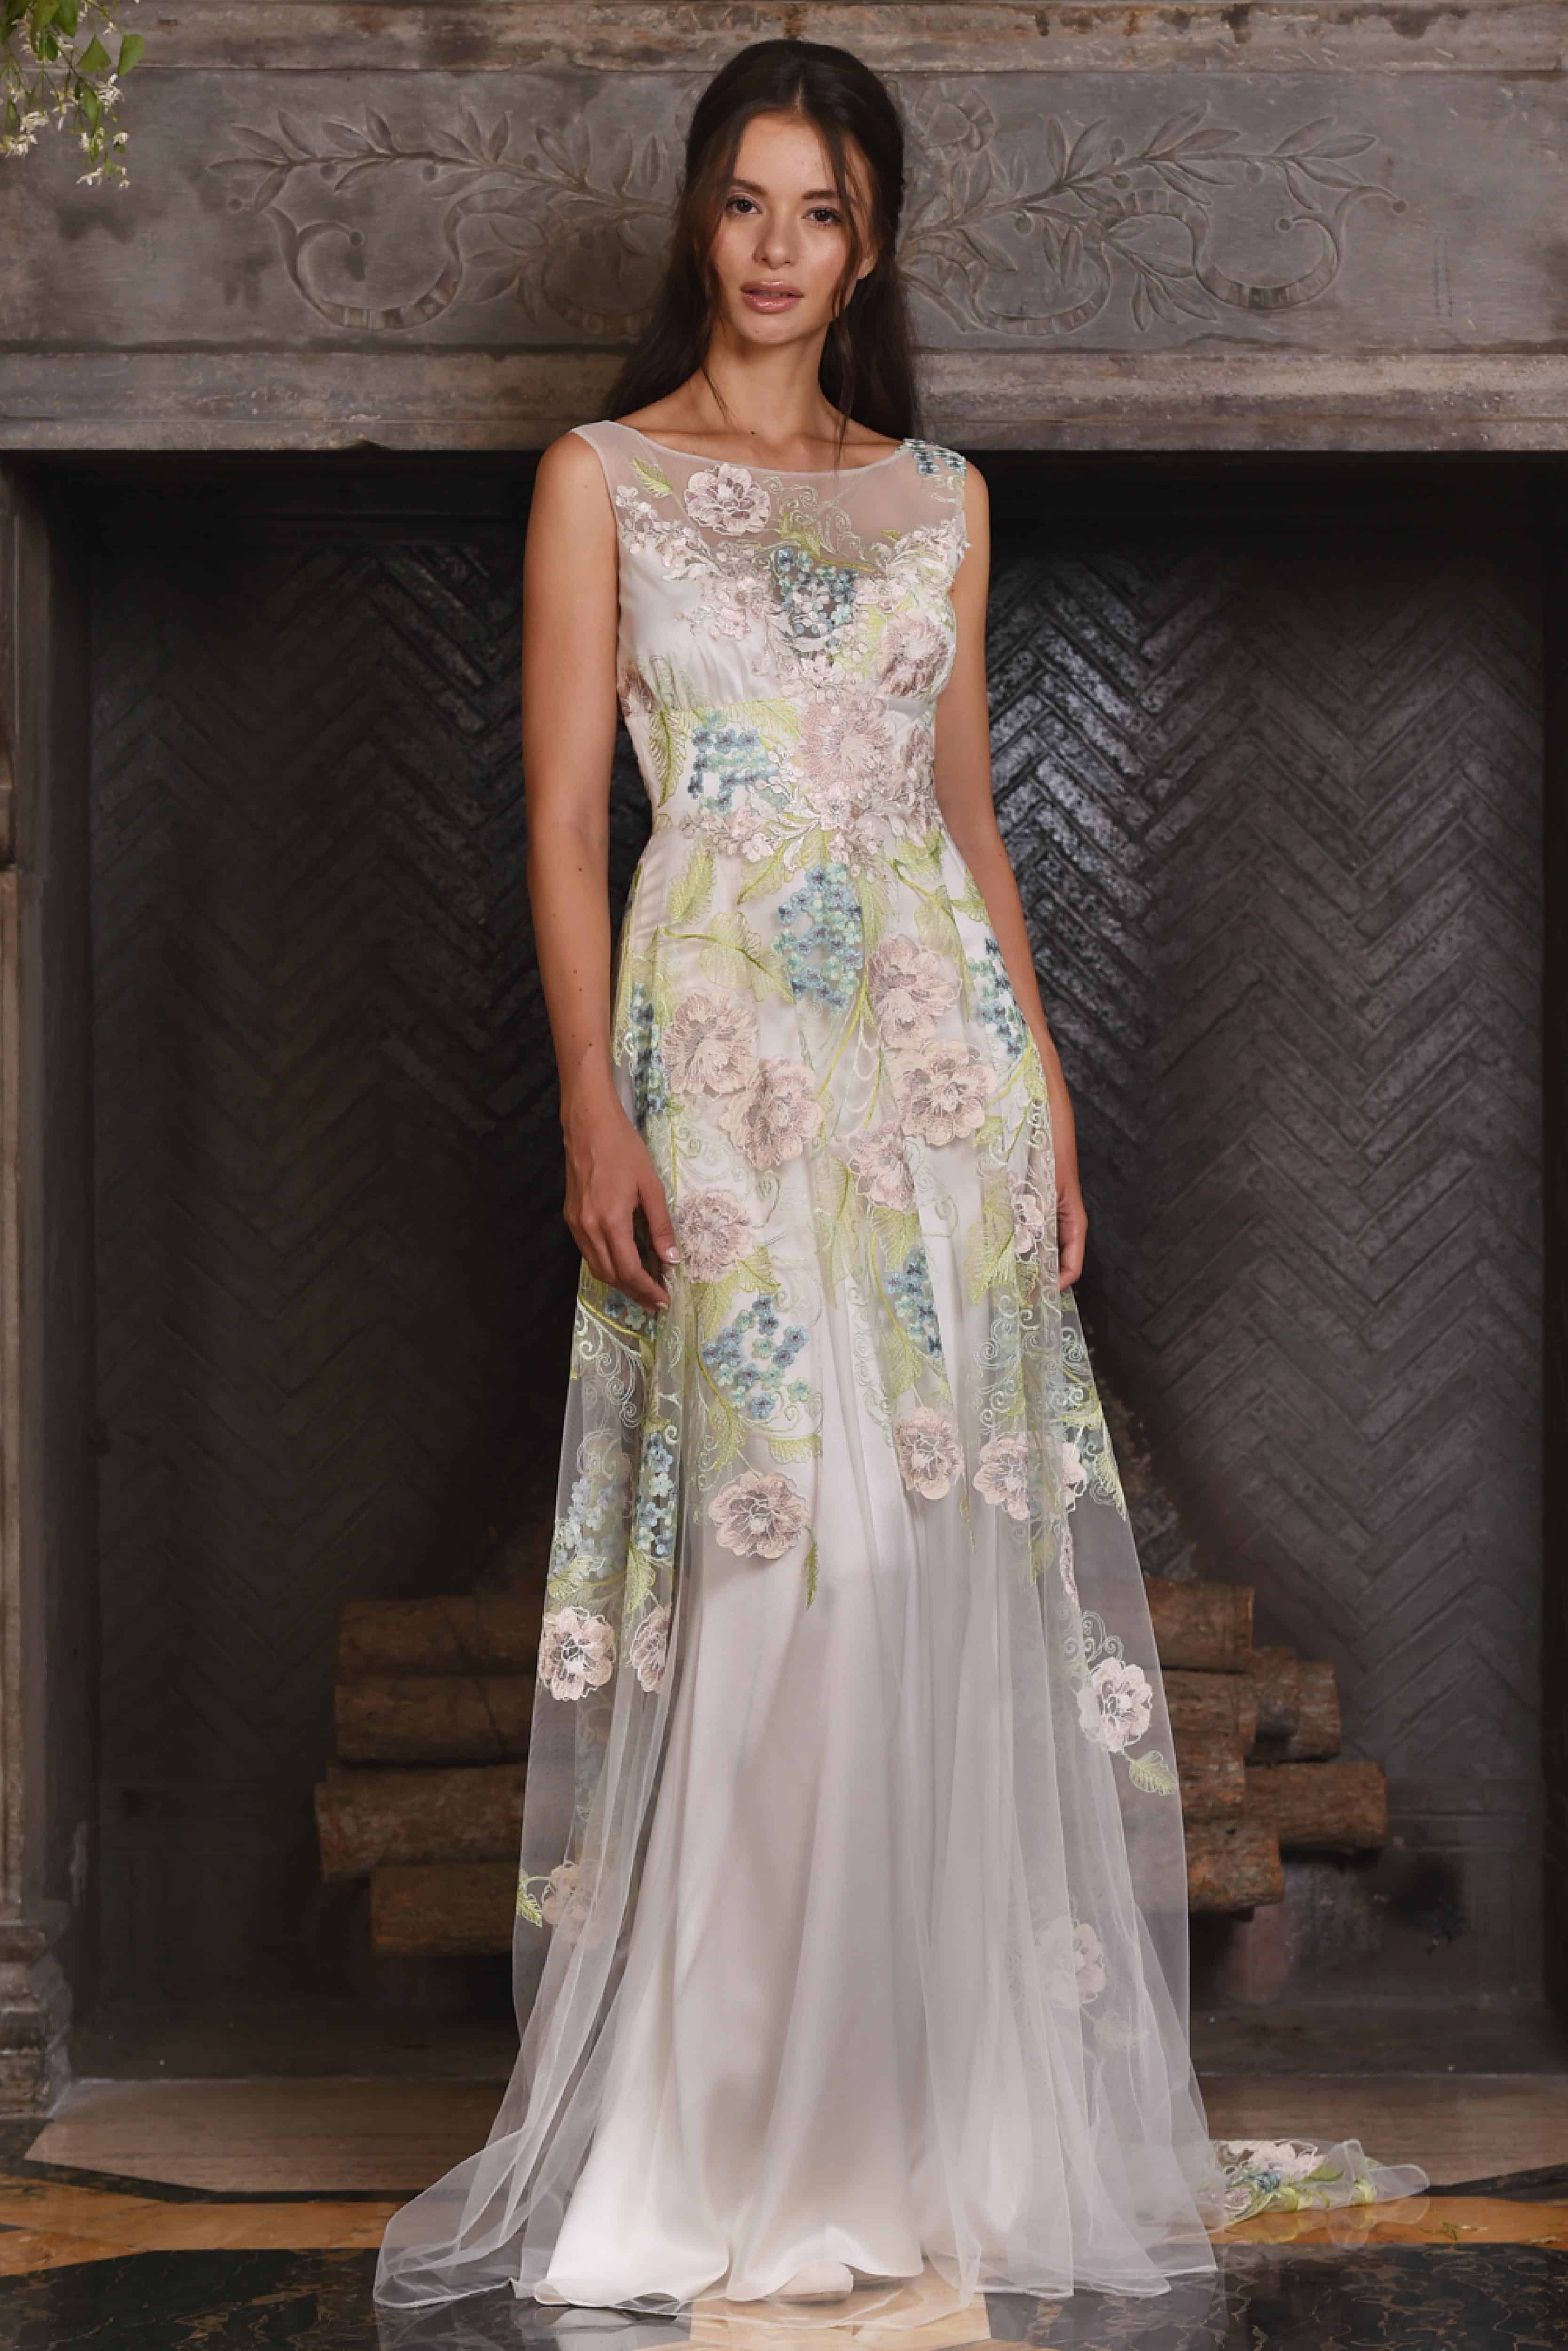 Claire-Pettibone-Four-Seasons-Maia-front.jpg